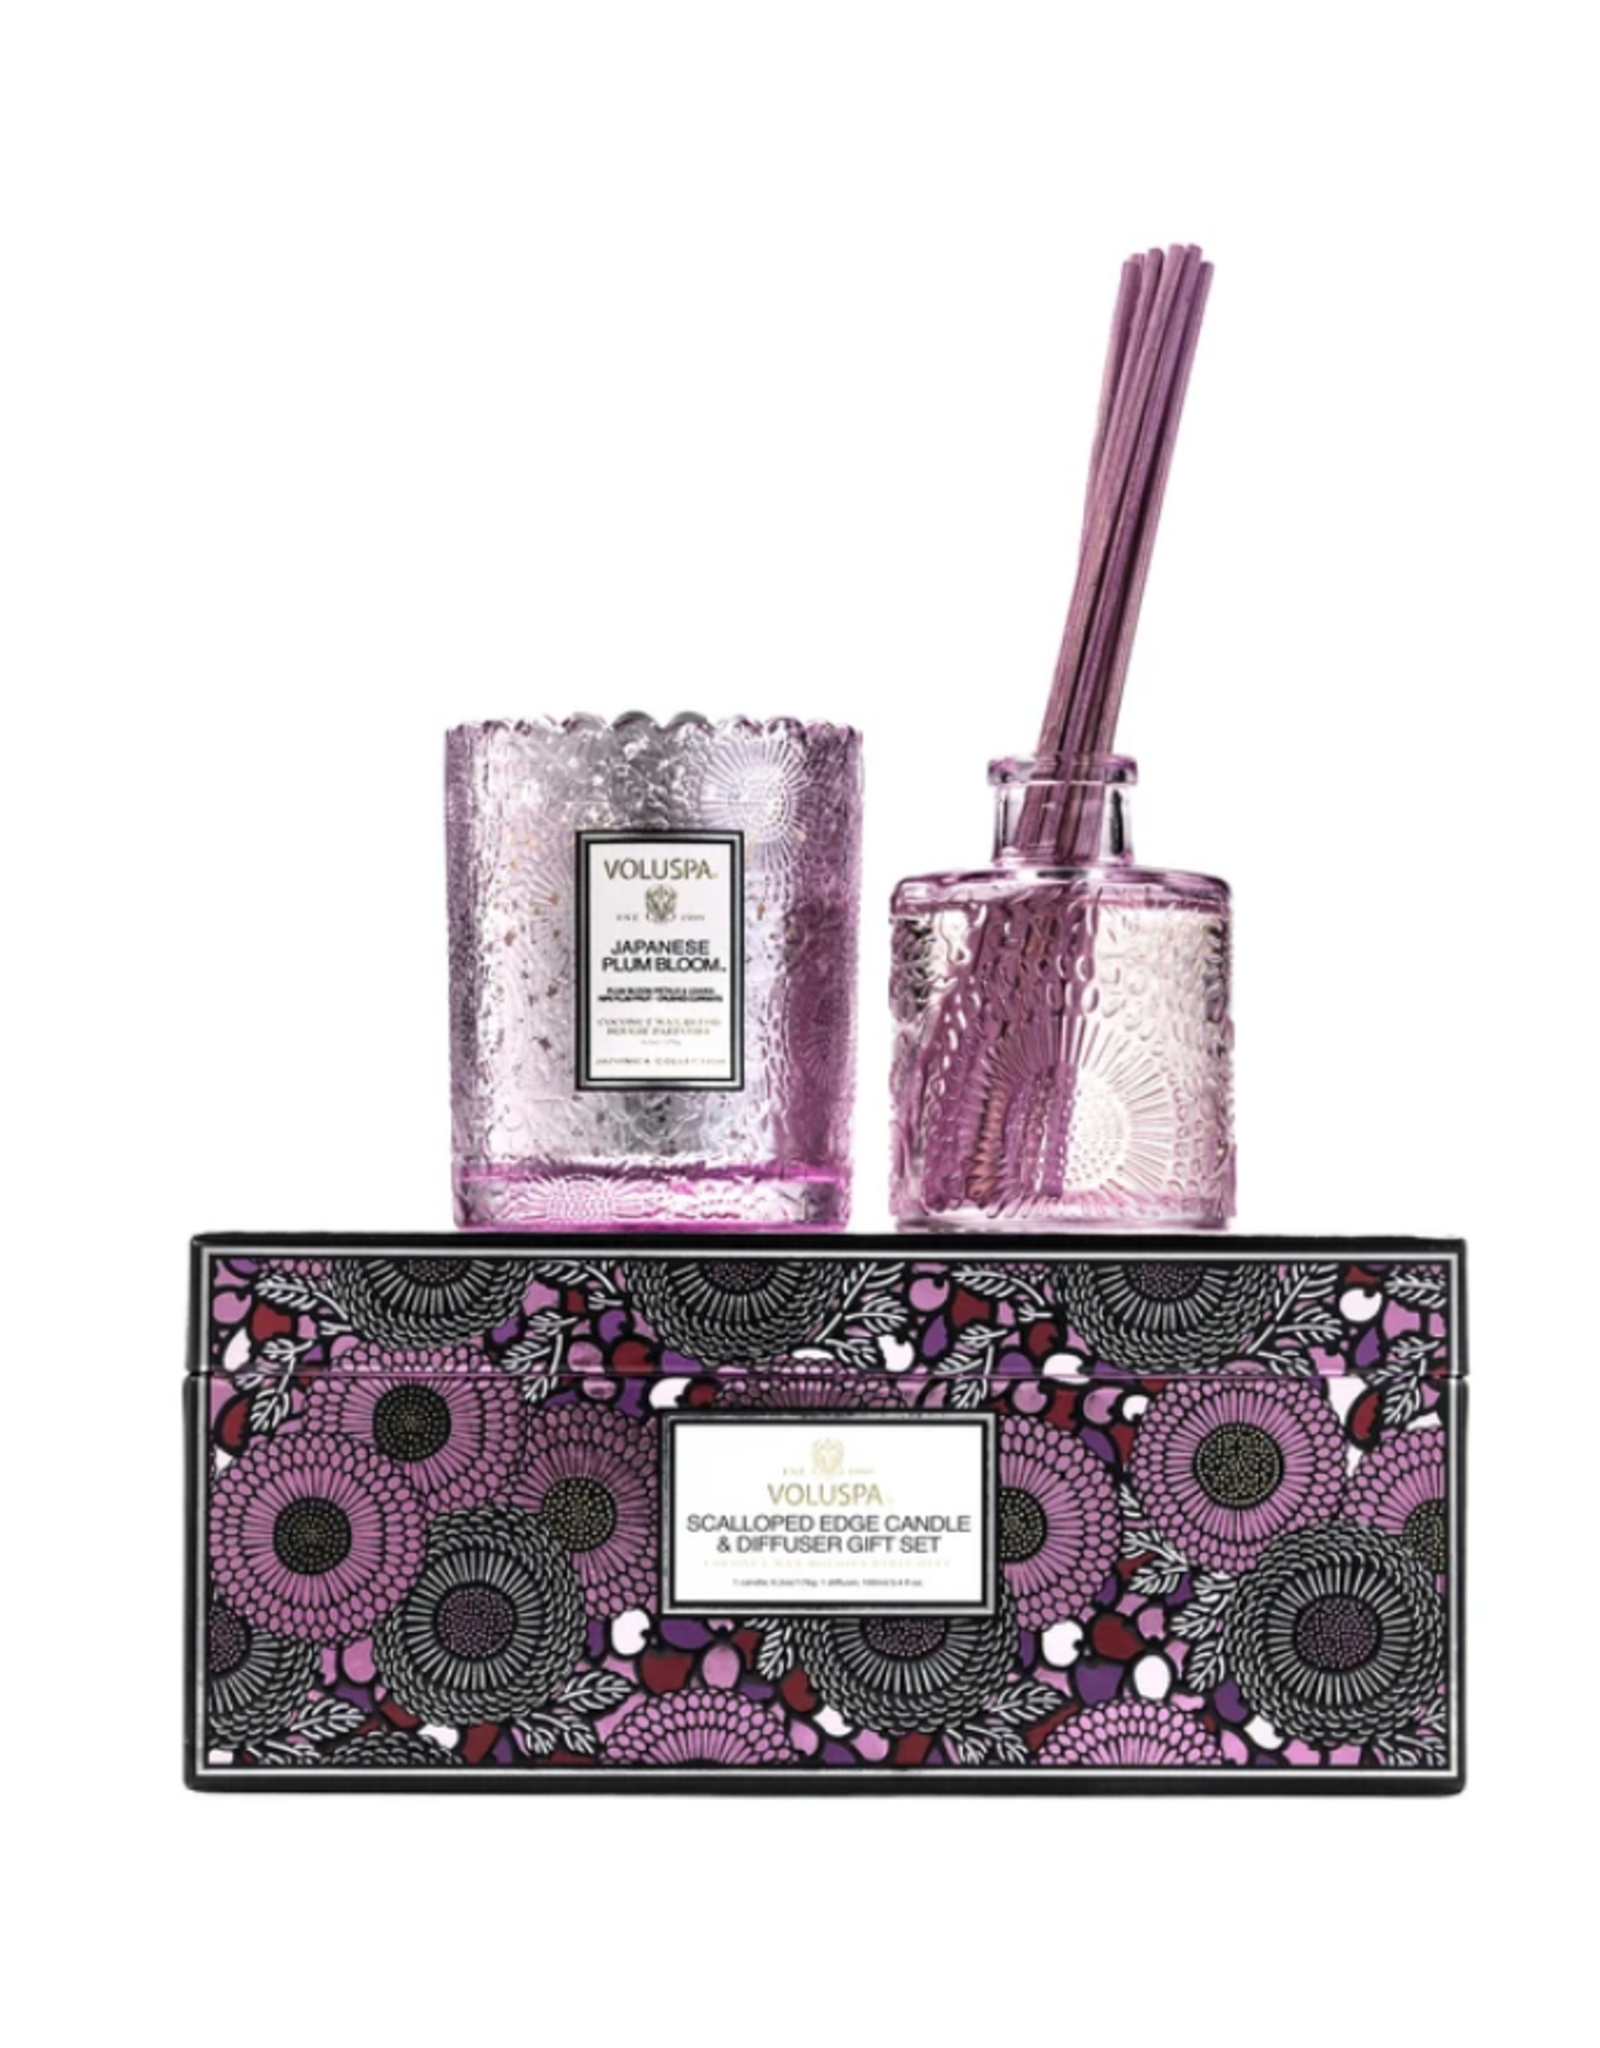 Voluspa Japanese Plum Bloom Scalloped Edge Candle and Diffuser Gift Set